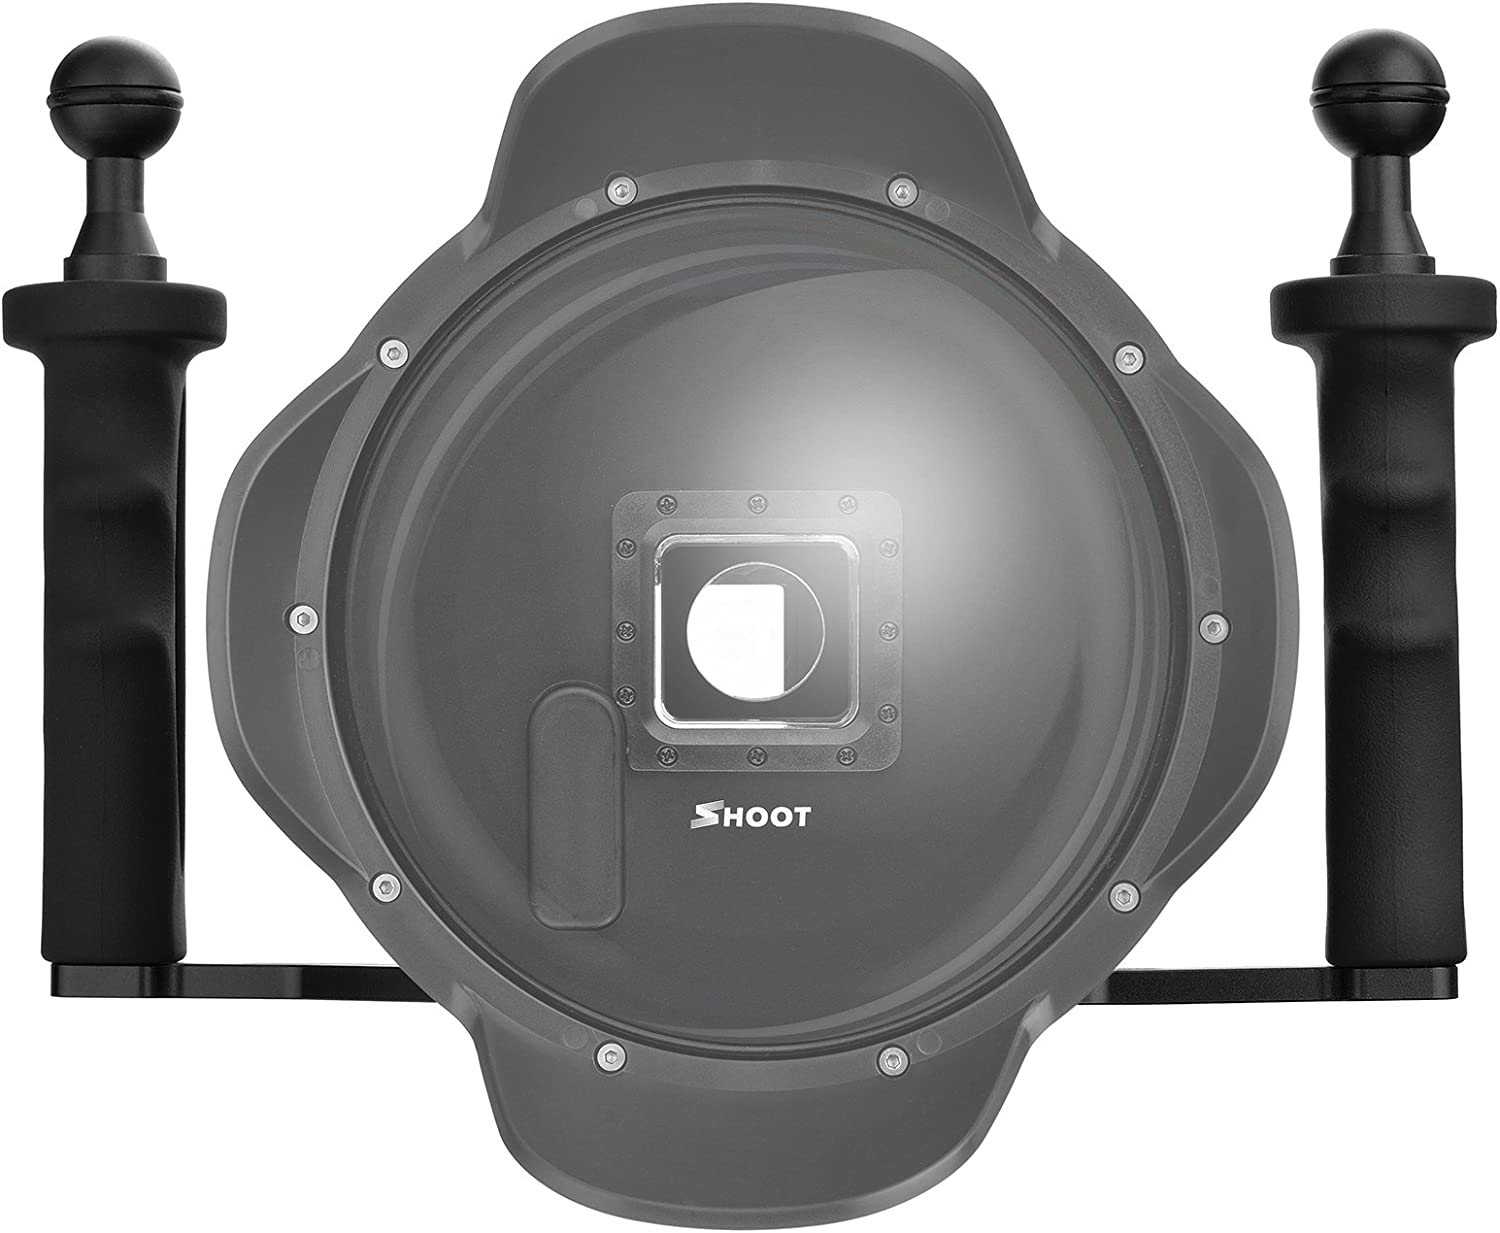 Simple Use with Trigger,10X Macro Filter,Red Filter for 50//50 Amazing Above and Under Water Shooting 6th Gen SHOOT Dome Port for GoPro HERO7 Black//6//5//HERO2018